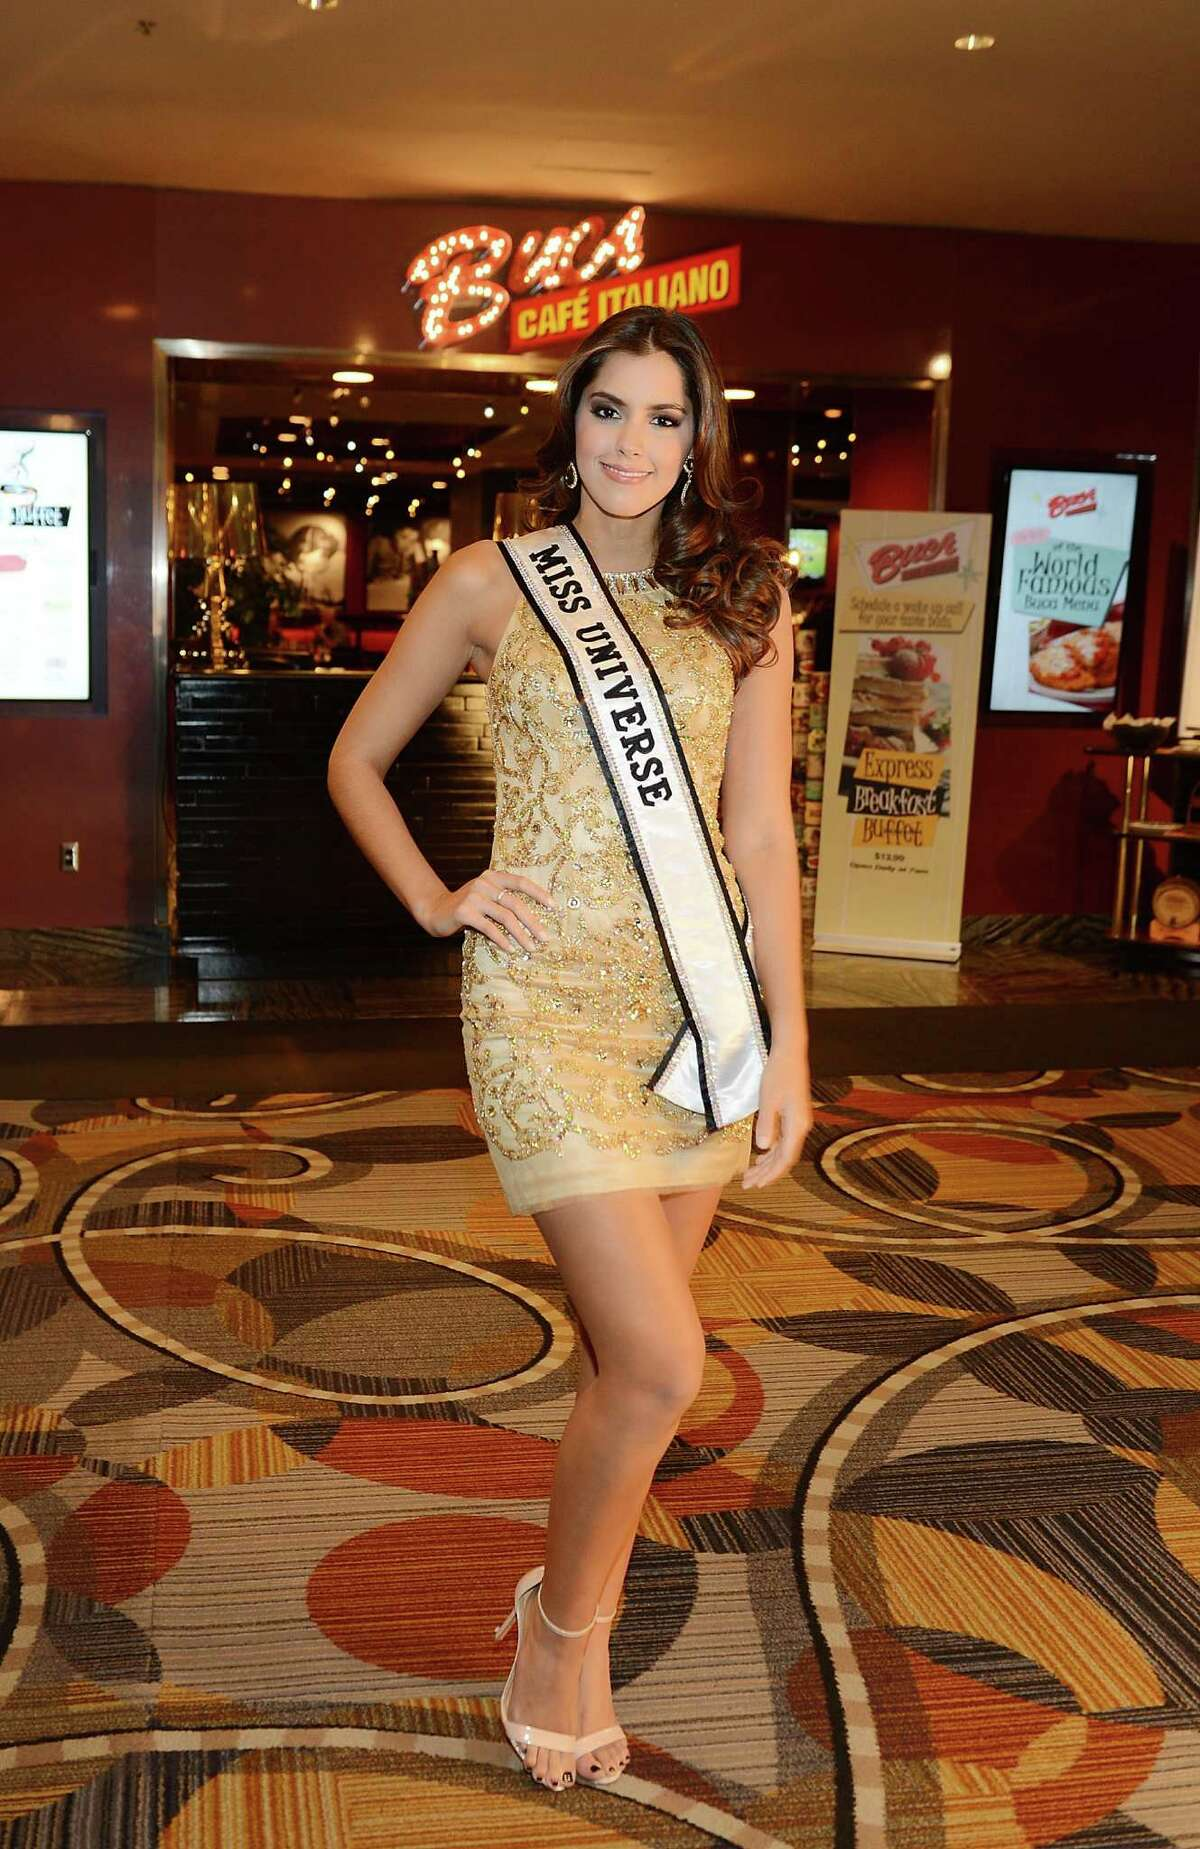 Miss Universe 2014 Paula Vega attends a welcome dinner Buca Di Beppo Cafe Italiano at Ballys Hotel And Casino on December 7, 2015 in Las Vegas, Nevada.